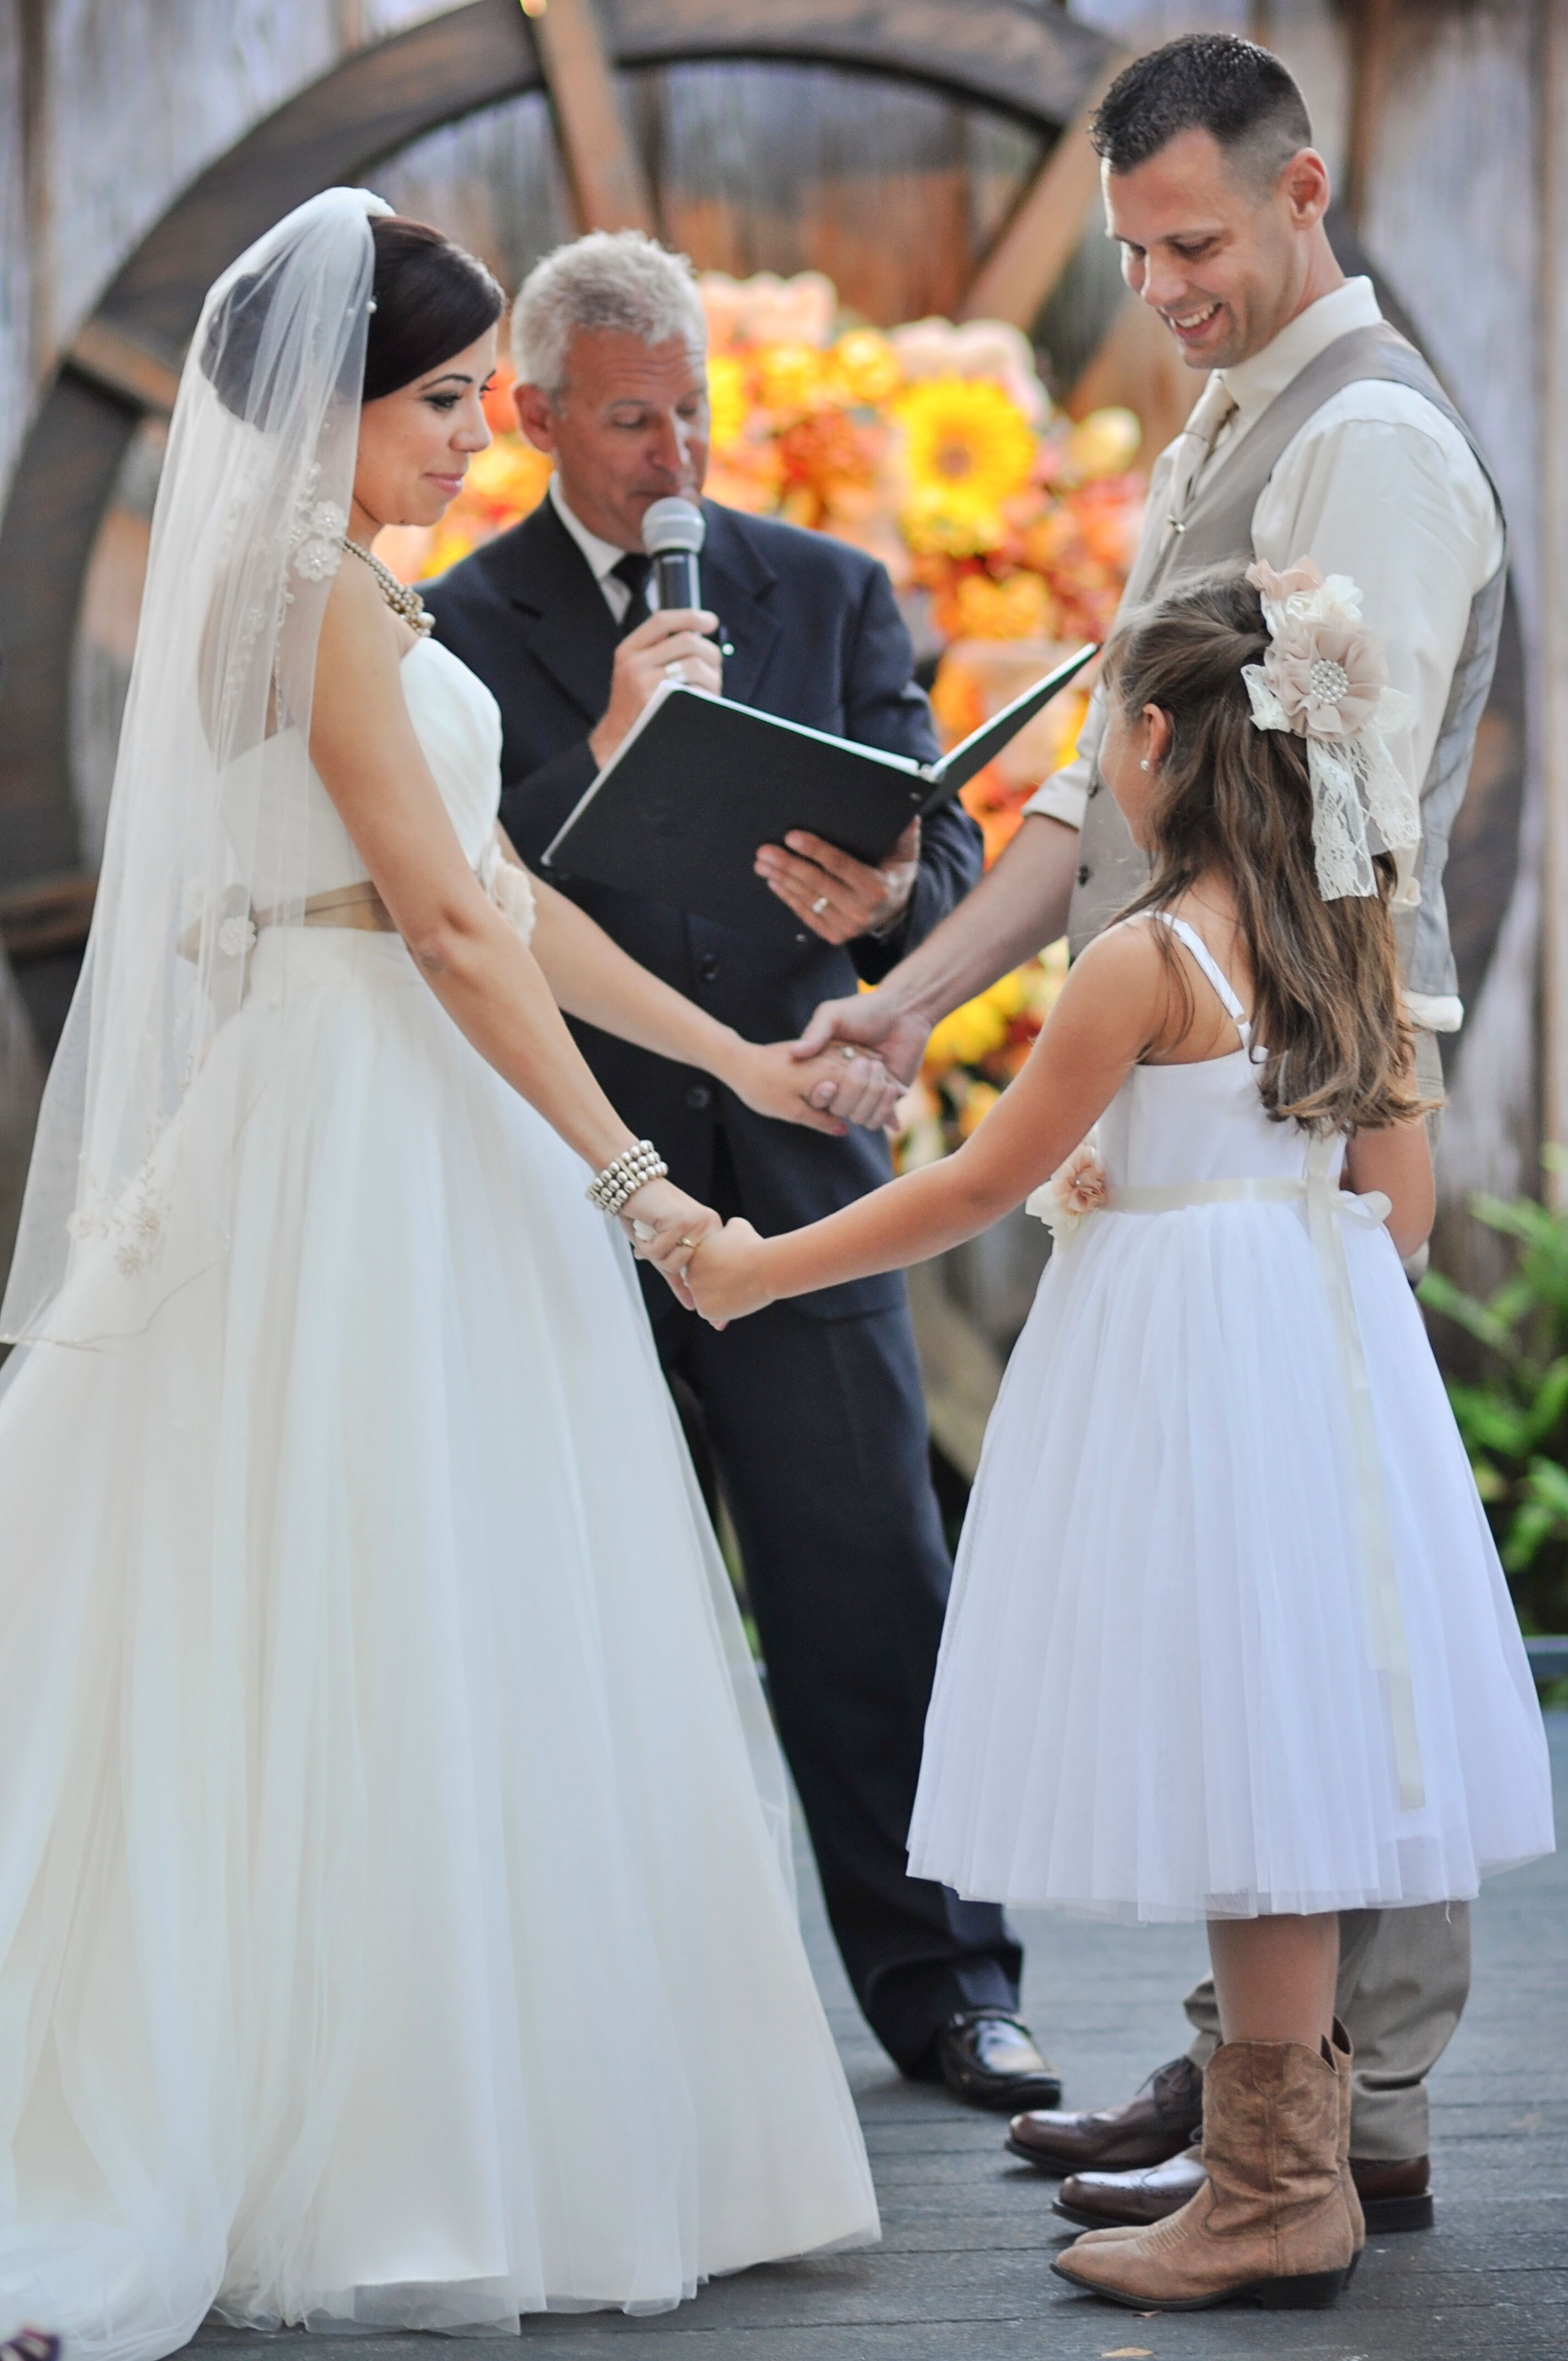 Personalized, Family Wedding Ceremony Tradition